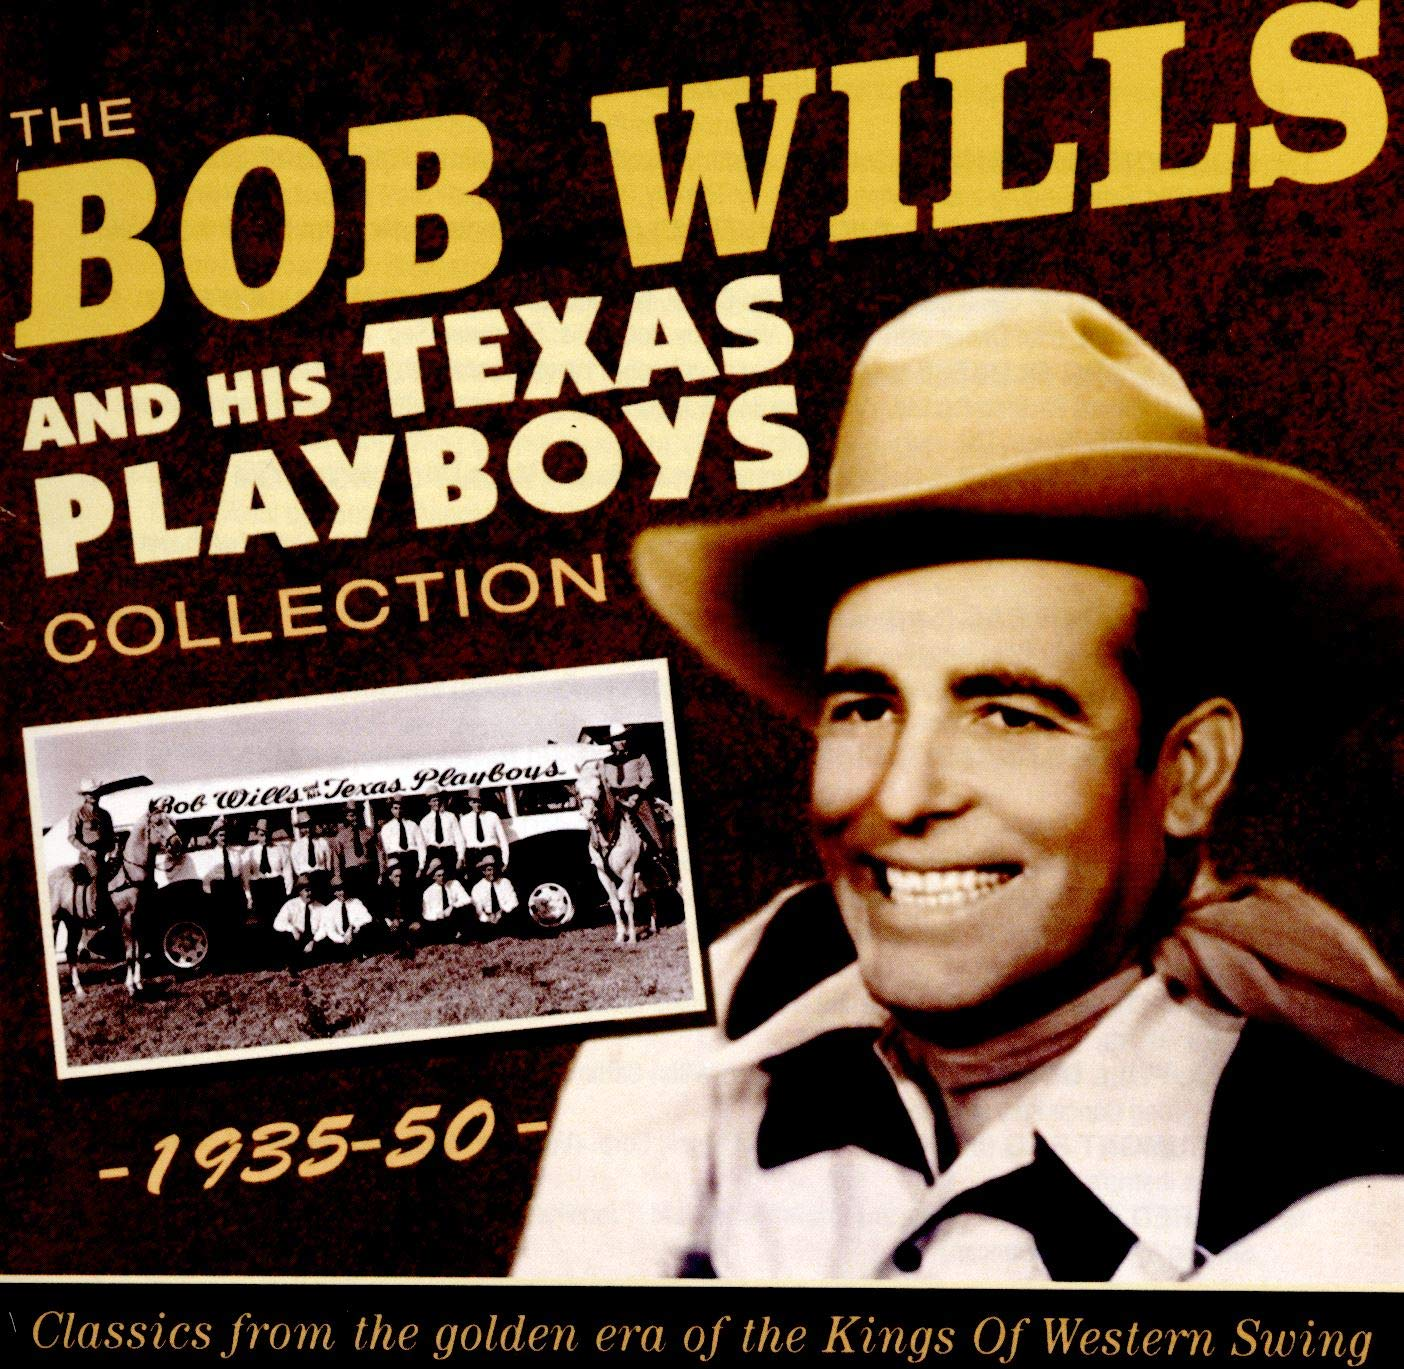 The Bob Wills And His Texas Playboys - Collection 1935-50 (2016) [FLAC] Download